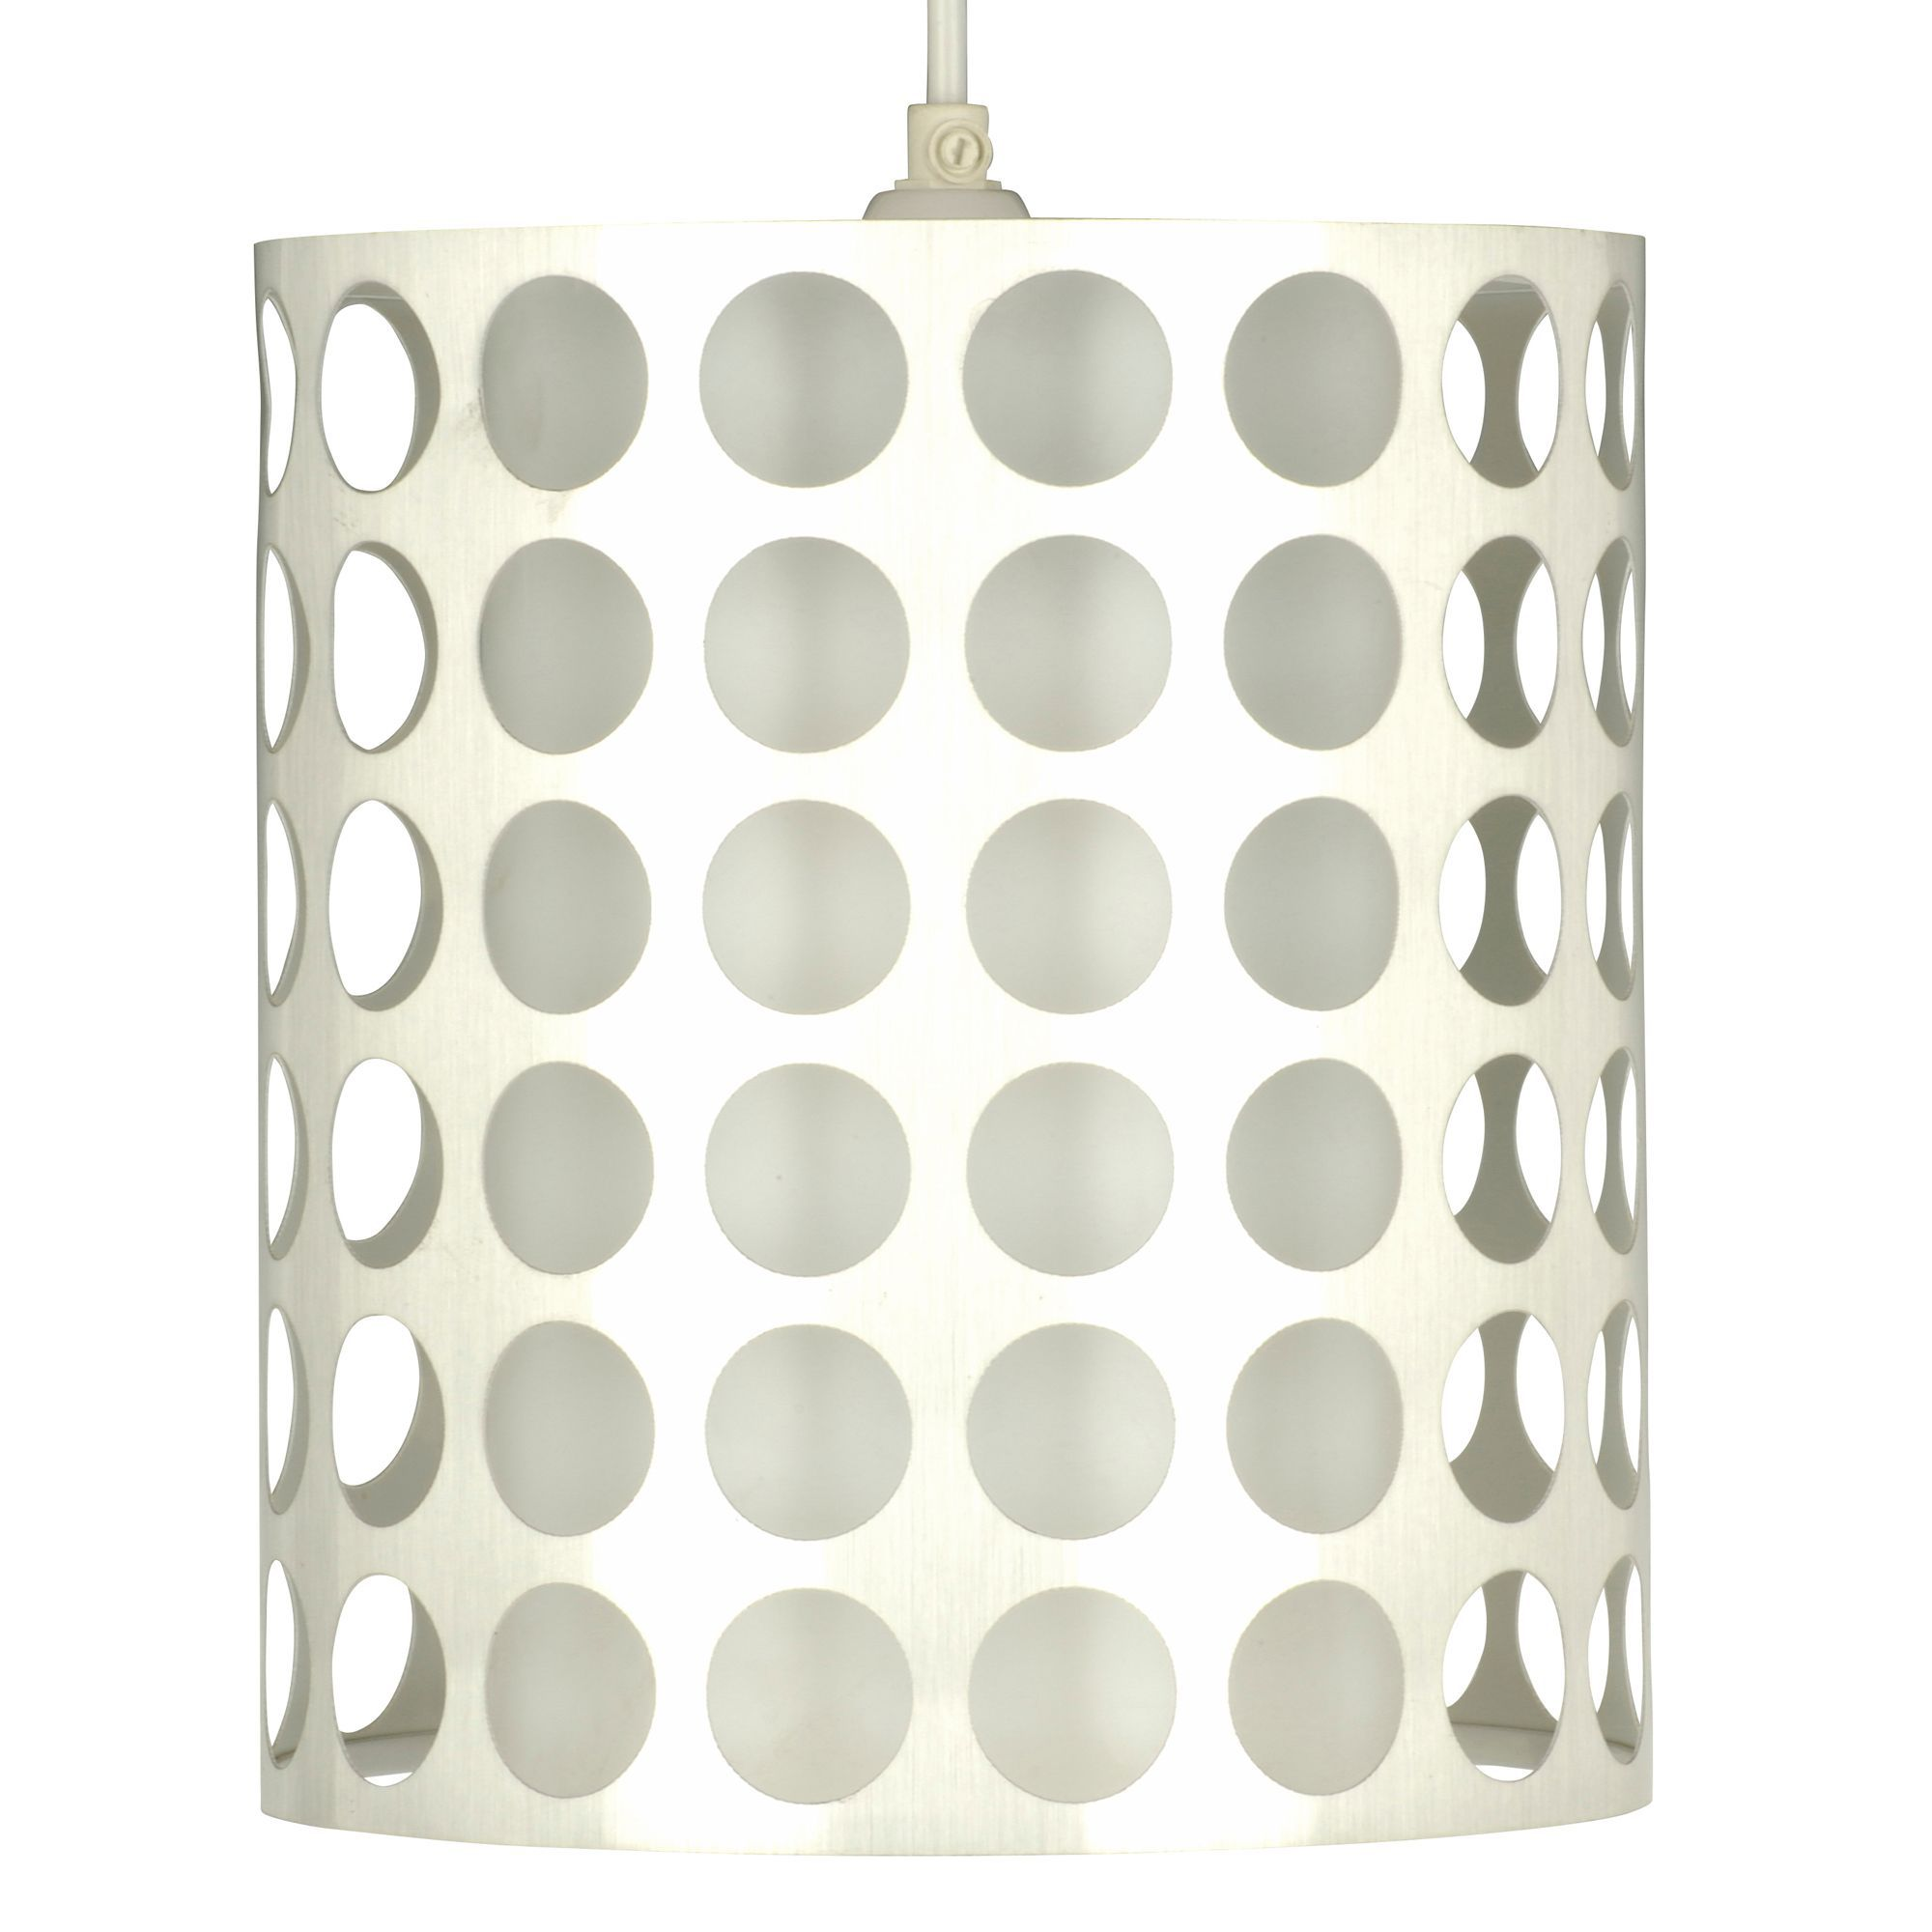 Holey White Inner Chrome Effect Cylinder Pendant Light Shade (d)205mm